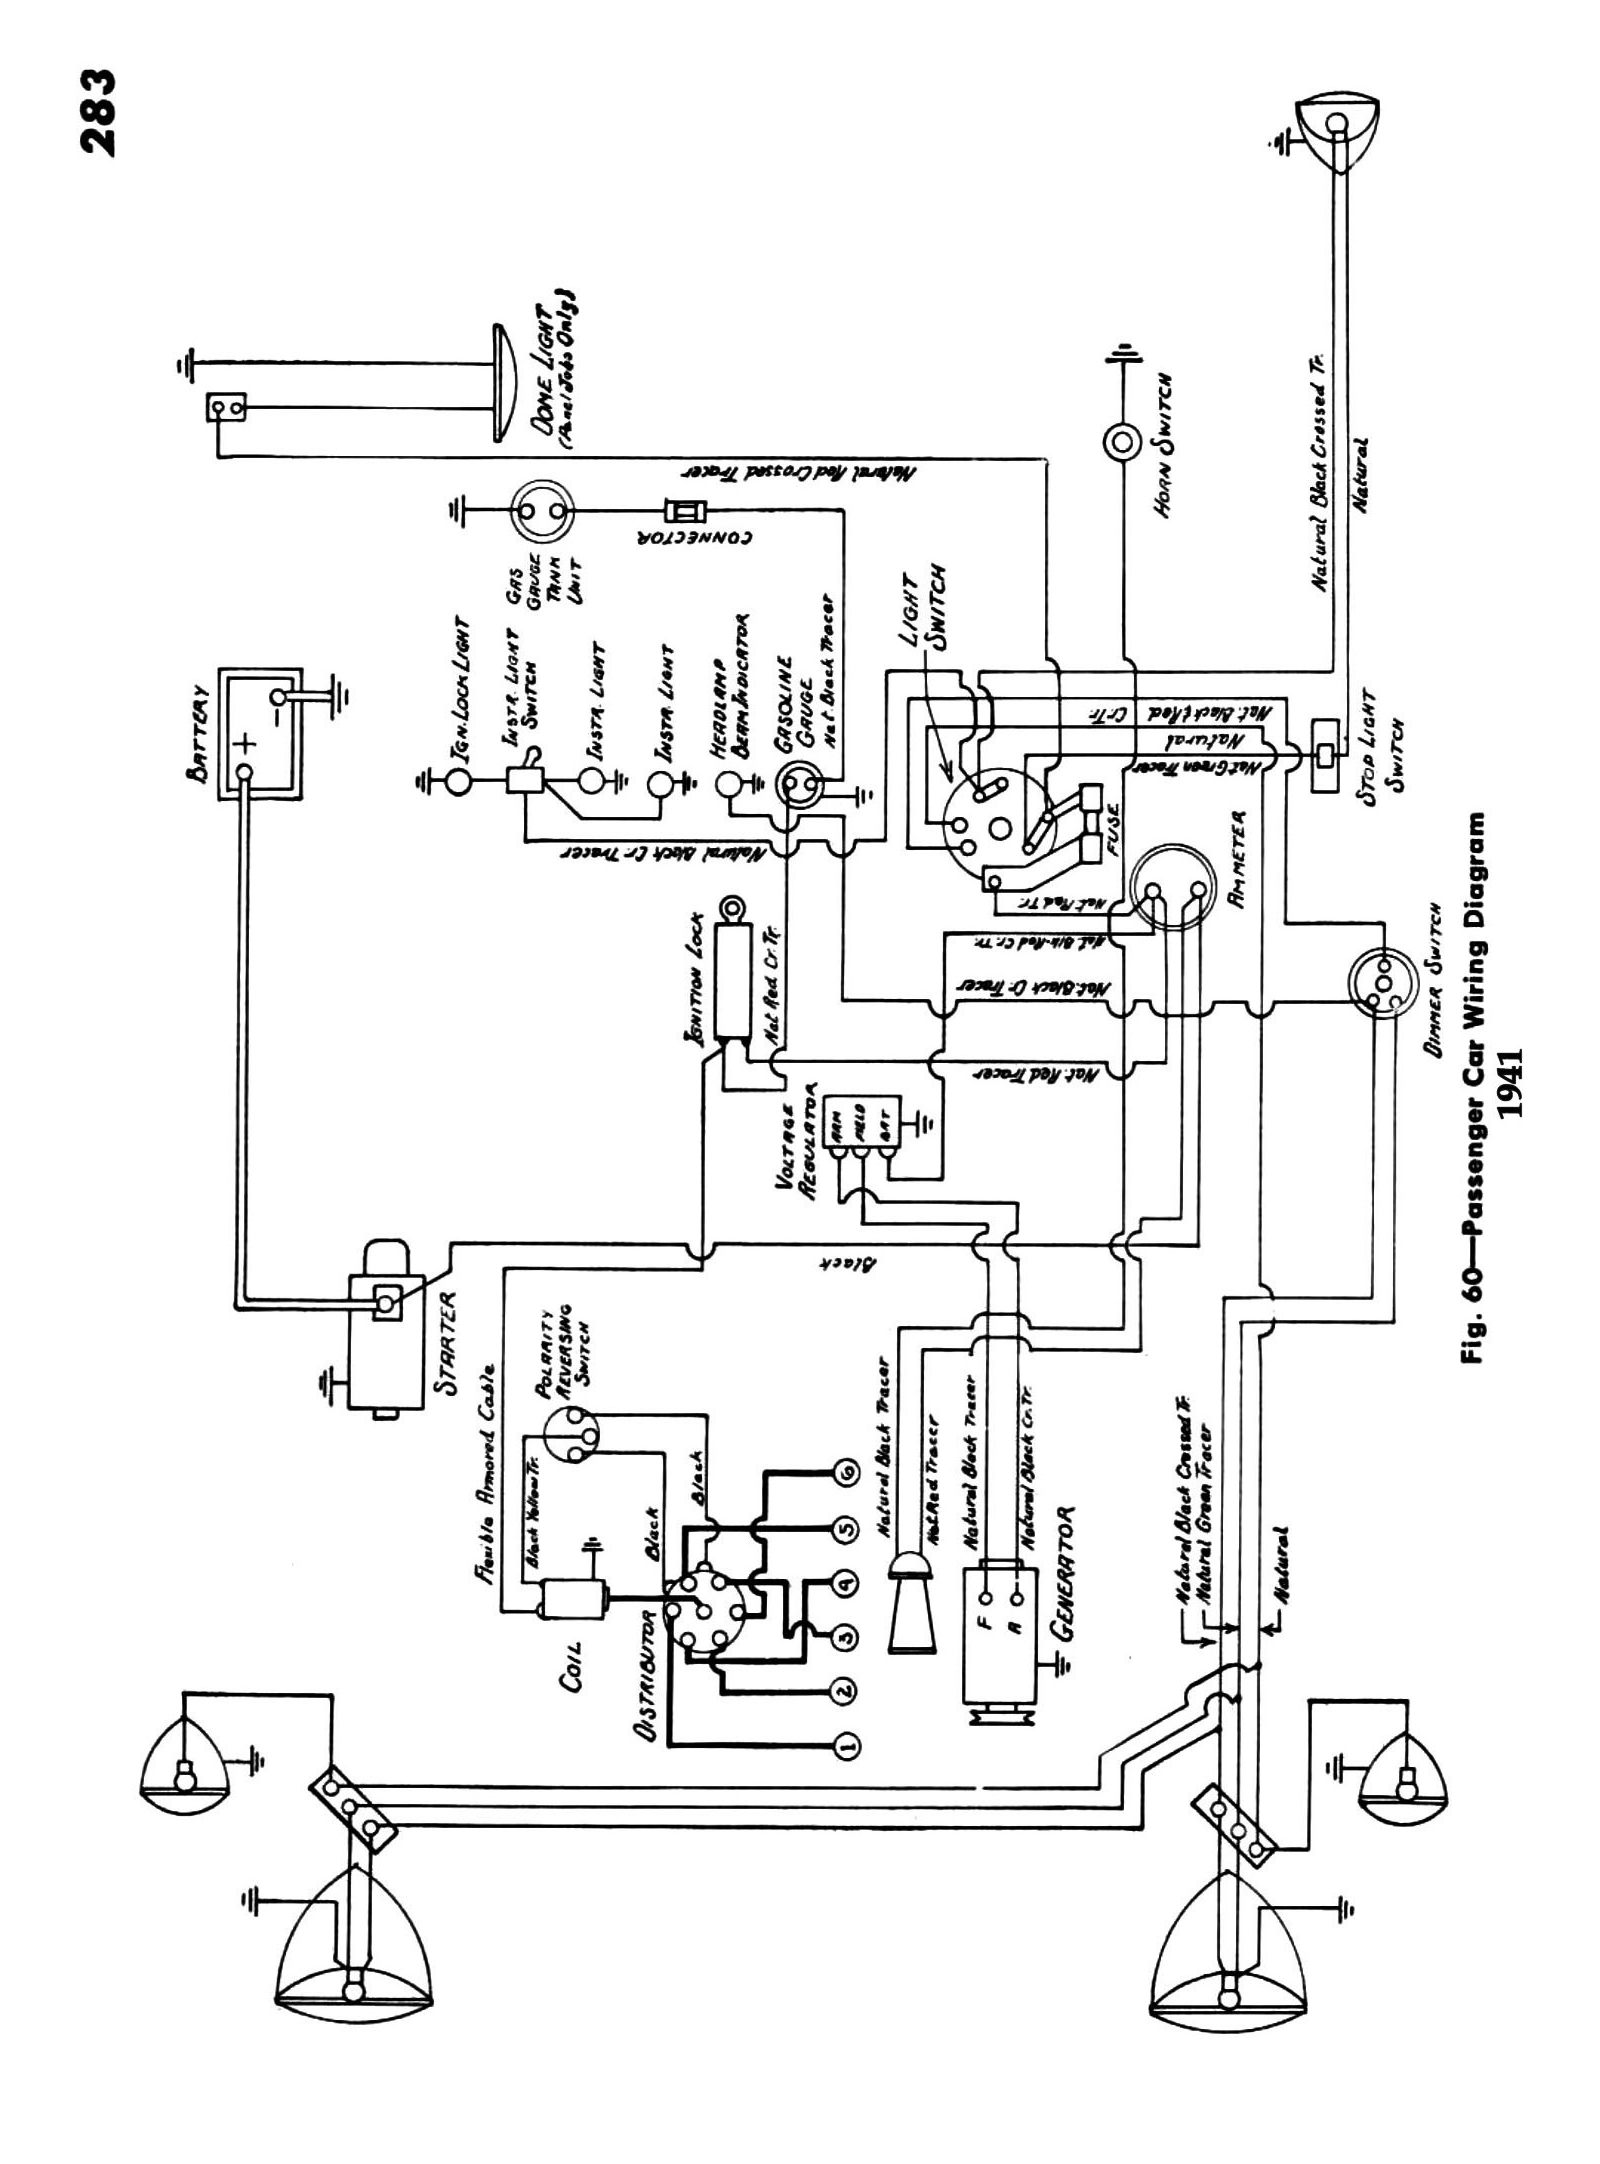 tractor wiring diagram with Wiring on 125932122 Lexmark T640 T642 T644 Service Repair Manual moreover John Deere Wiring Diagram 7 Pin Connector in addition John Deere Stx38 Parts Diagram likewise Sears Tractor Wire Diagram together with Generator.